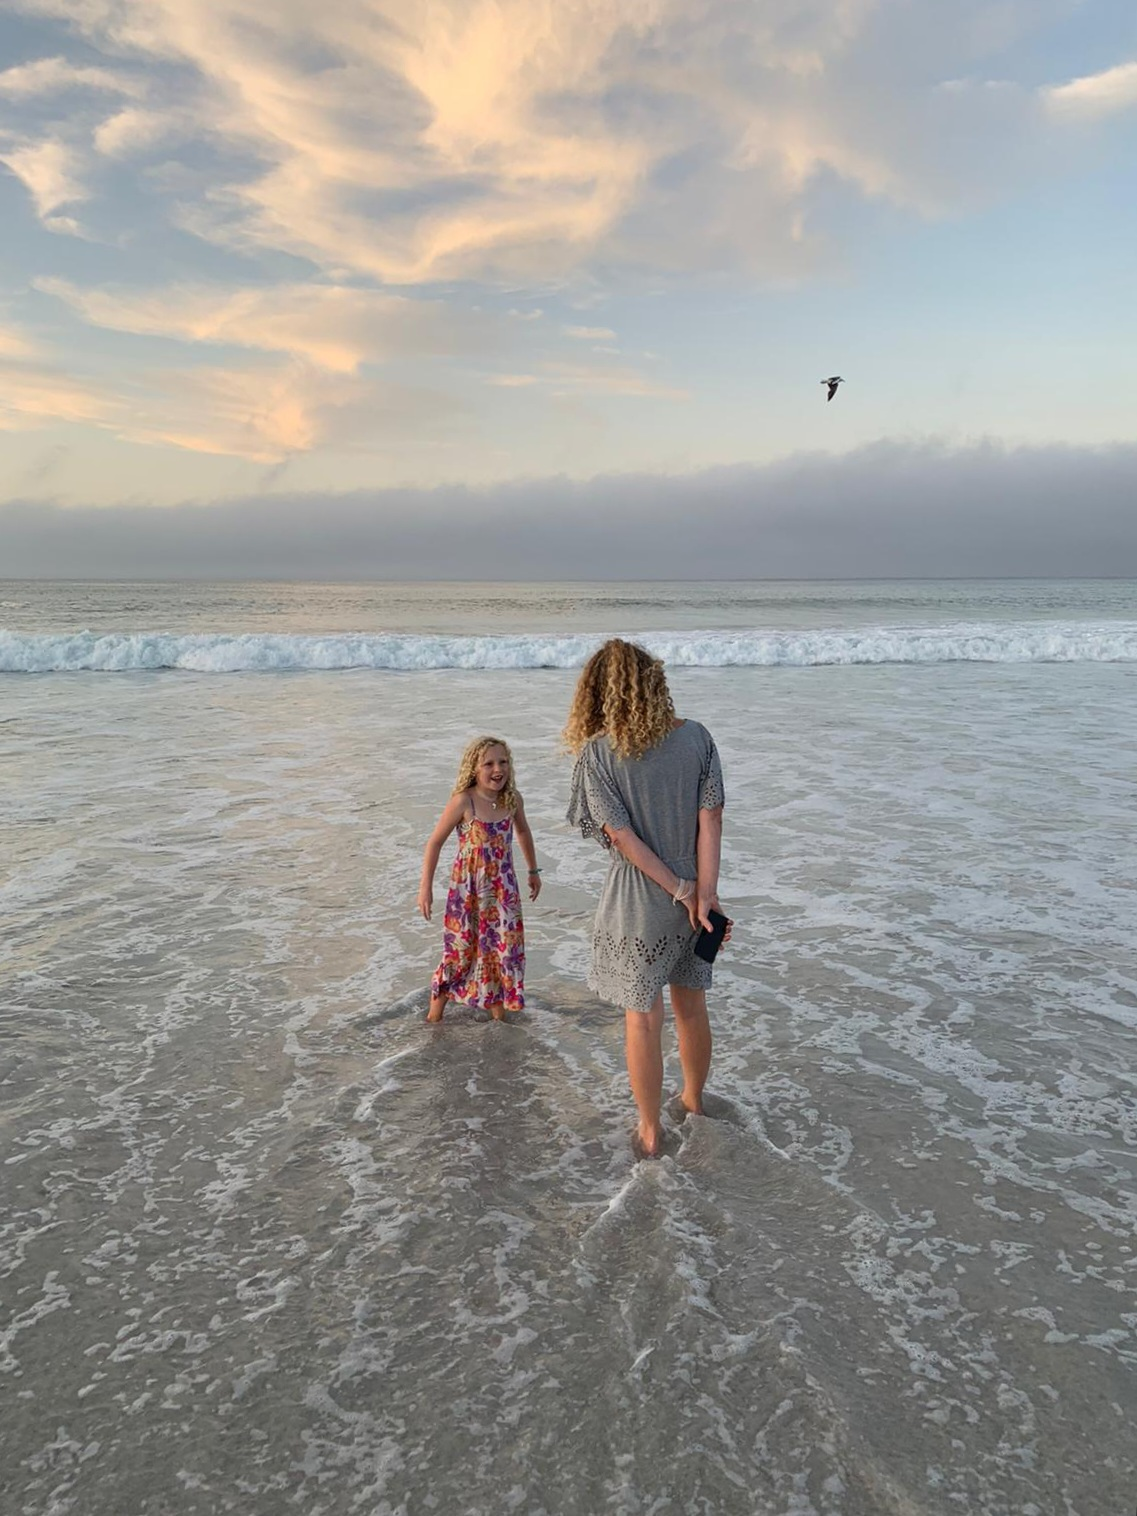 mom daughter and gull in the ocean shallows